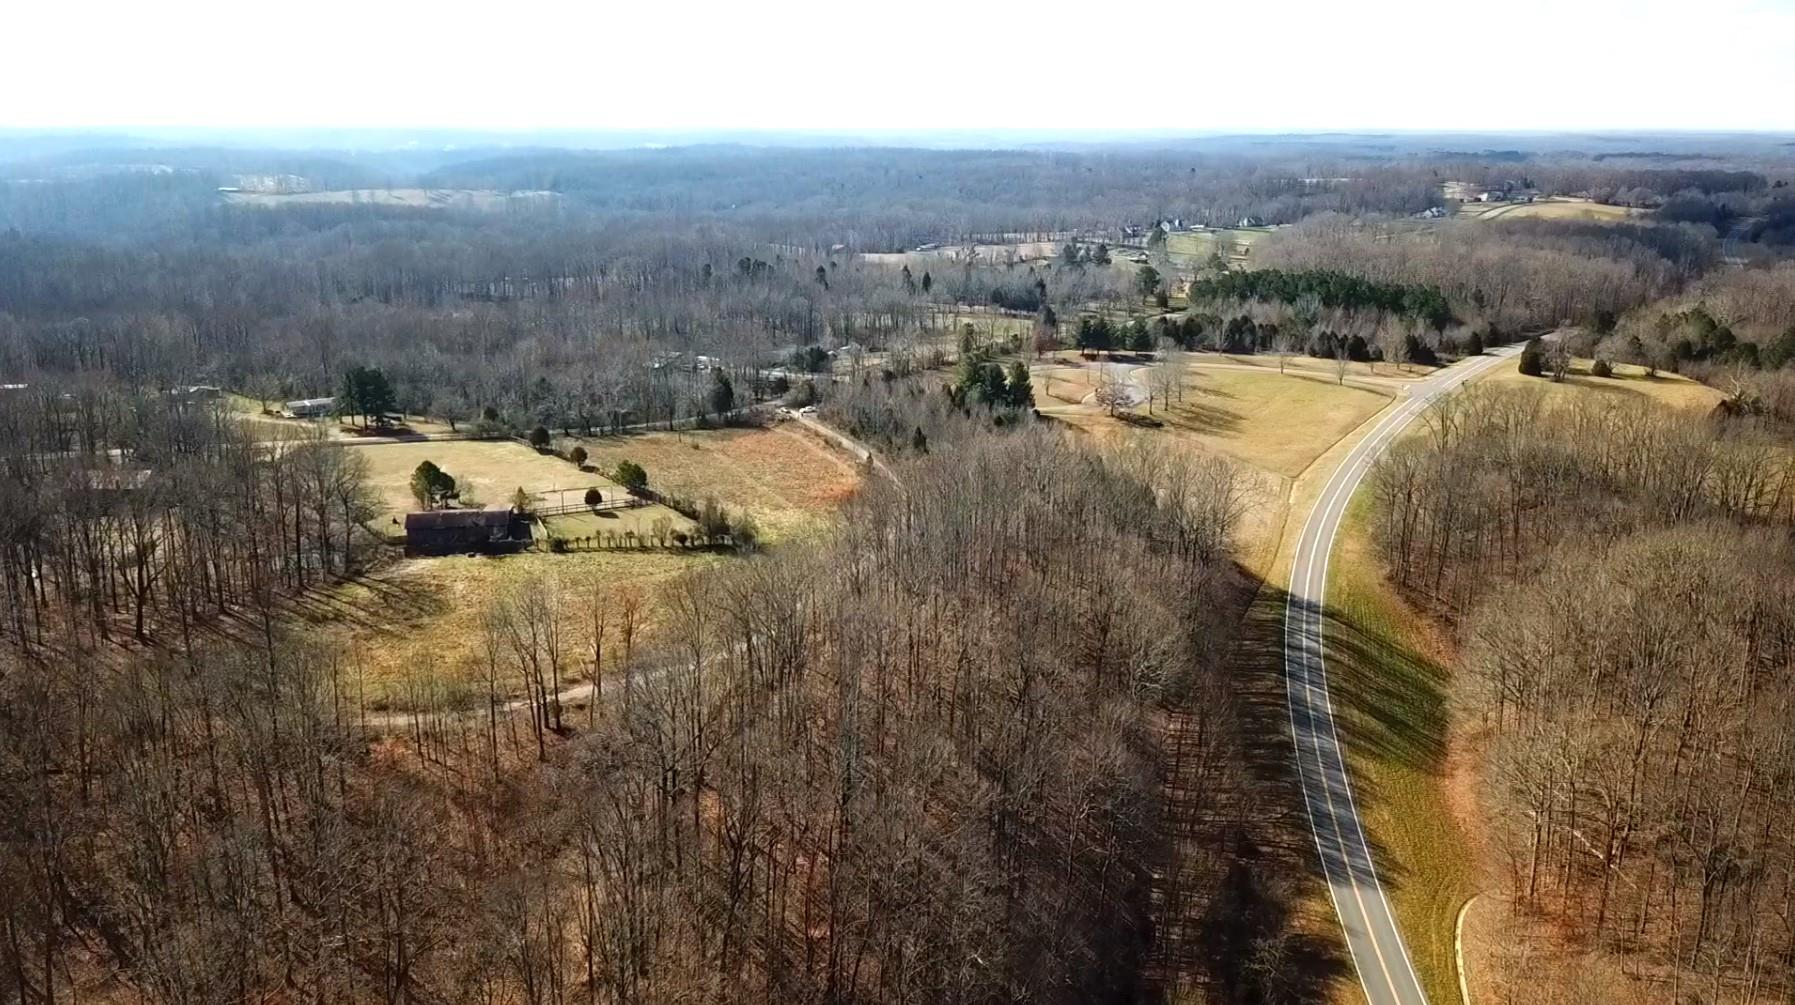 Beautiful 27 Acres in sought after Williamson County in Franklin Tennessee!! Just minutes from Leipers Fork. Linear to Natchez Trace Park (horse trails for miles), Rolling Hills, Mature Trees, Gravel Driveway throughout the property, Greenbelt Taxes-Timber Exemption and an Artesian Spring. Land Perked for 5 Bedroom Home.